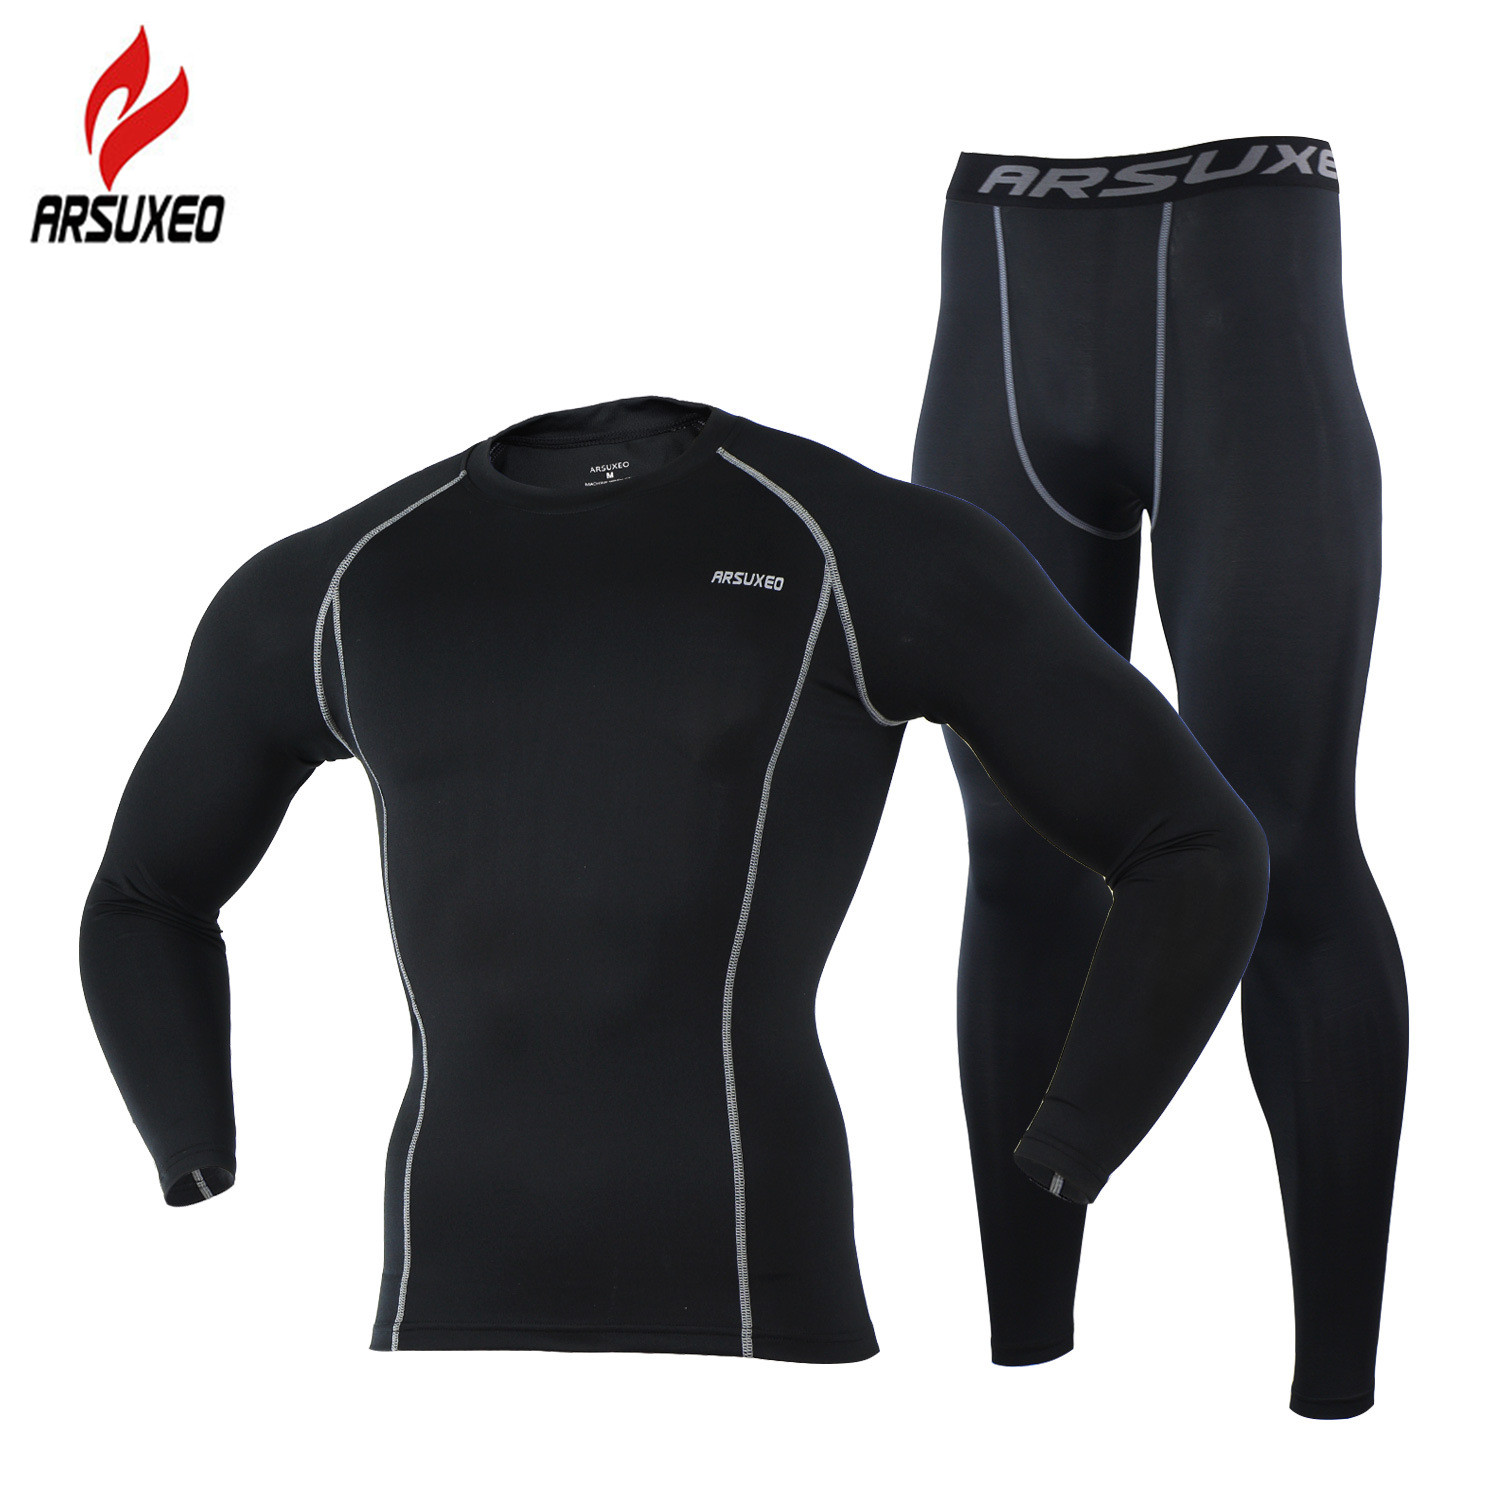 ARSUXEO Mens Compression Set for Running Jogging Sports Gym Fitness Tights Workout Crossfit Suits Long Shirt and Leggings Pants-in Running Sets from Sports & Entertainment on AliExpress